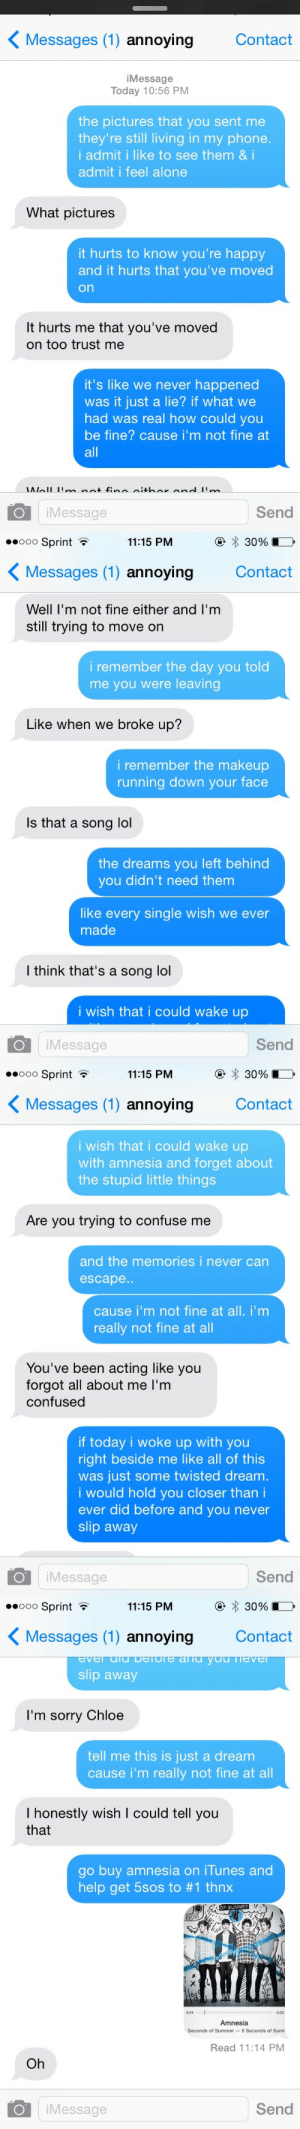 """bitchwuh:  radioirwin:  calcobain:  getover-5sos:  chloeok:  I TEXTED MY EX THE LYRICS TO AMNESIA AND ITS THE FUNNIEST THINF EVER  LMAOOOOOO 'I'm sorry Chloe""""  omfg  OH  THIS WAS INSPIRING IM DOING THIS : ( Messages (1) annoying  Contact  iMessage  Today 10:56 PM  the pictures that you sent me  they're still living in my phone.  i admit i like to see them & i  admit i feel alone  What pictures  it hurts to know you're happy  and it hurts that you've moved  on  It hurts me that you've moved  on too trust me  it's like we never happened  was it just a lie? if what we  had was real how could you  be fine? cause i'm not fine at  all  Well 'mm not fin e sither end 'm  Send  iMessage   00000 Sprint ?  11:15 PM  30%  ( Messages (1) annoying  Contact  Well l'm not fine either and I'm  still trying to move on  i remember the day you told  me you were leaving  Like when we broke up?  i remember the makeup  running down your face  Is that a song lol  the dreams you left behind  you didn't need them  like every single wish we ever  made  I think that's a song lol  i wish that i could wake up  Send  iMessage   00000 Sprint ?  11:15 PM  30%  ( Messages (1) annoying  Contact  i wish that i could wake up  with amnesia and forget about  the stupid little things  Are you trying to confuse me  and the memories i never can  escape..  cause i'm not fine at all. i'm  really not fine at all  You've been acting like you  forgot all about me l'm  confused  if today i woke up with you  right beside me like all of this  was just some twisted dream.  i would hold you closer than i  ever did before and you never  slip away  Send  iMessage   00000 Sprint ?  11:15 PM  30%  < Messages (1) annoying  Contact  ever uiu pelore aTu you iever  slip away  I'm sorry Chloe  tell me this is just a dream  cause i'm really not fine at all  I honestly wish I could tell you  that  go buy amnesia on iTunes and  help get 5sos to #1 thnx  F SUMMER  0:24  -3:33  Amnesia  Seconds of Summer – 5 Seconds of Sumr  Read """